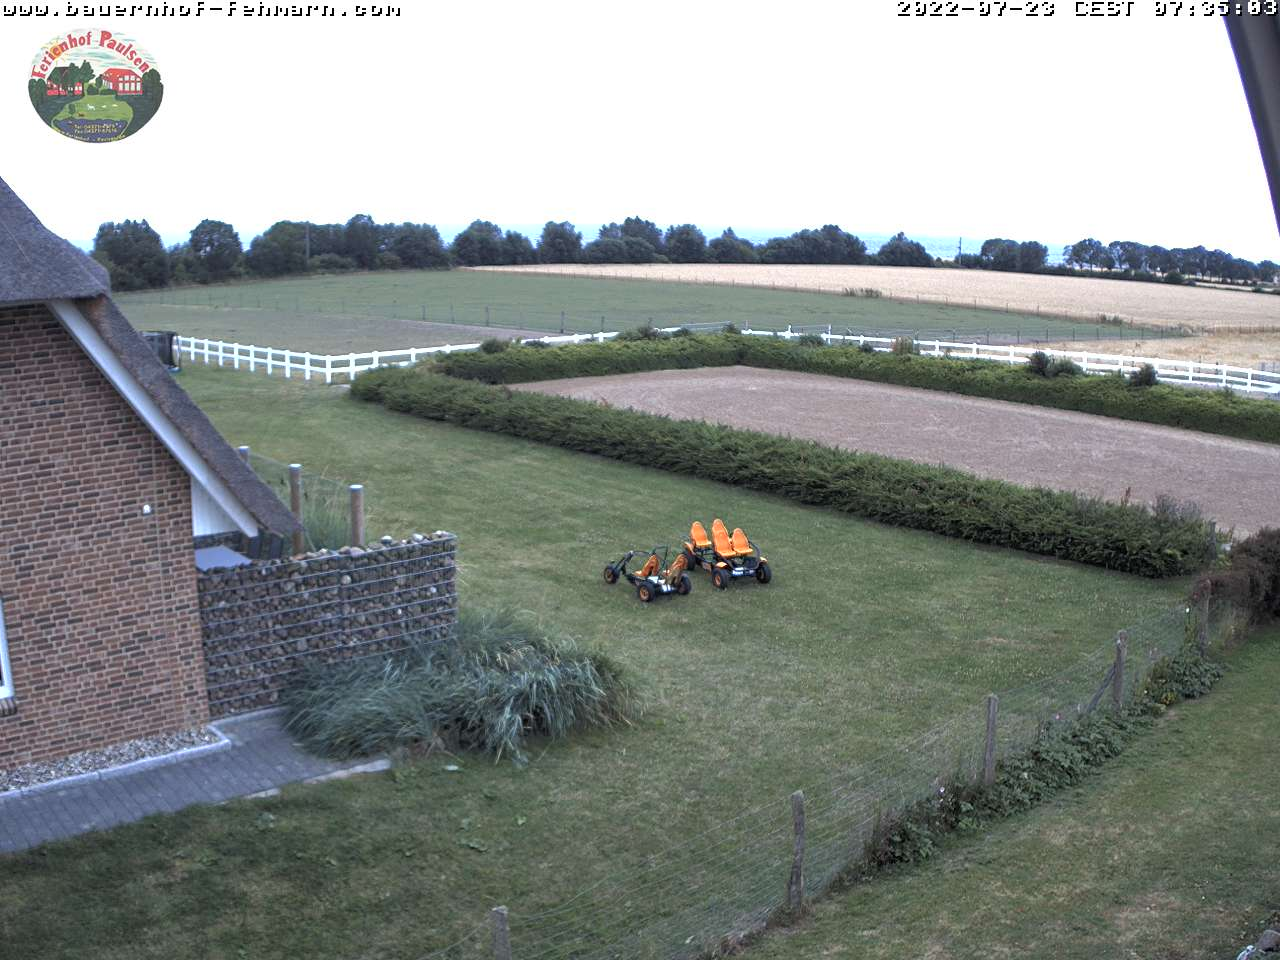 Webcam: Bauernhof Paulsen